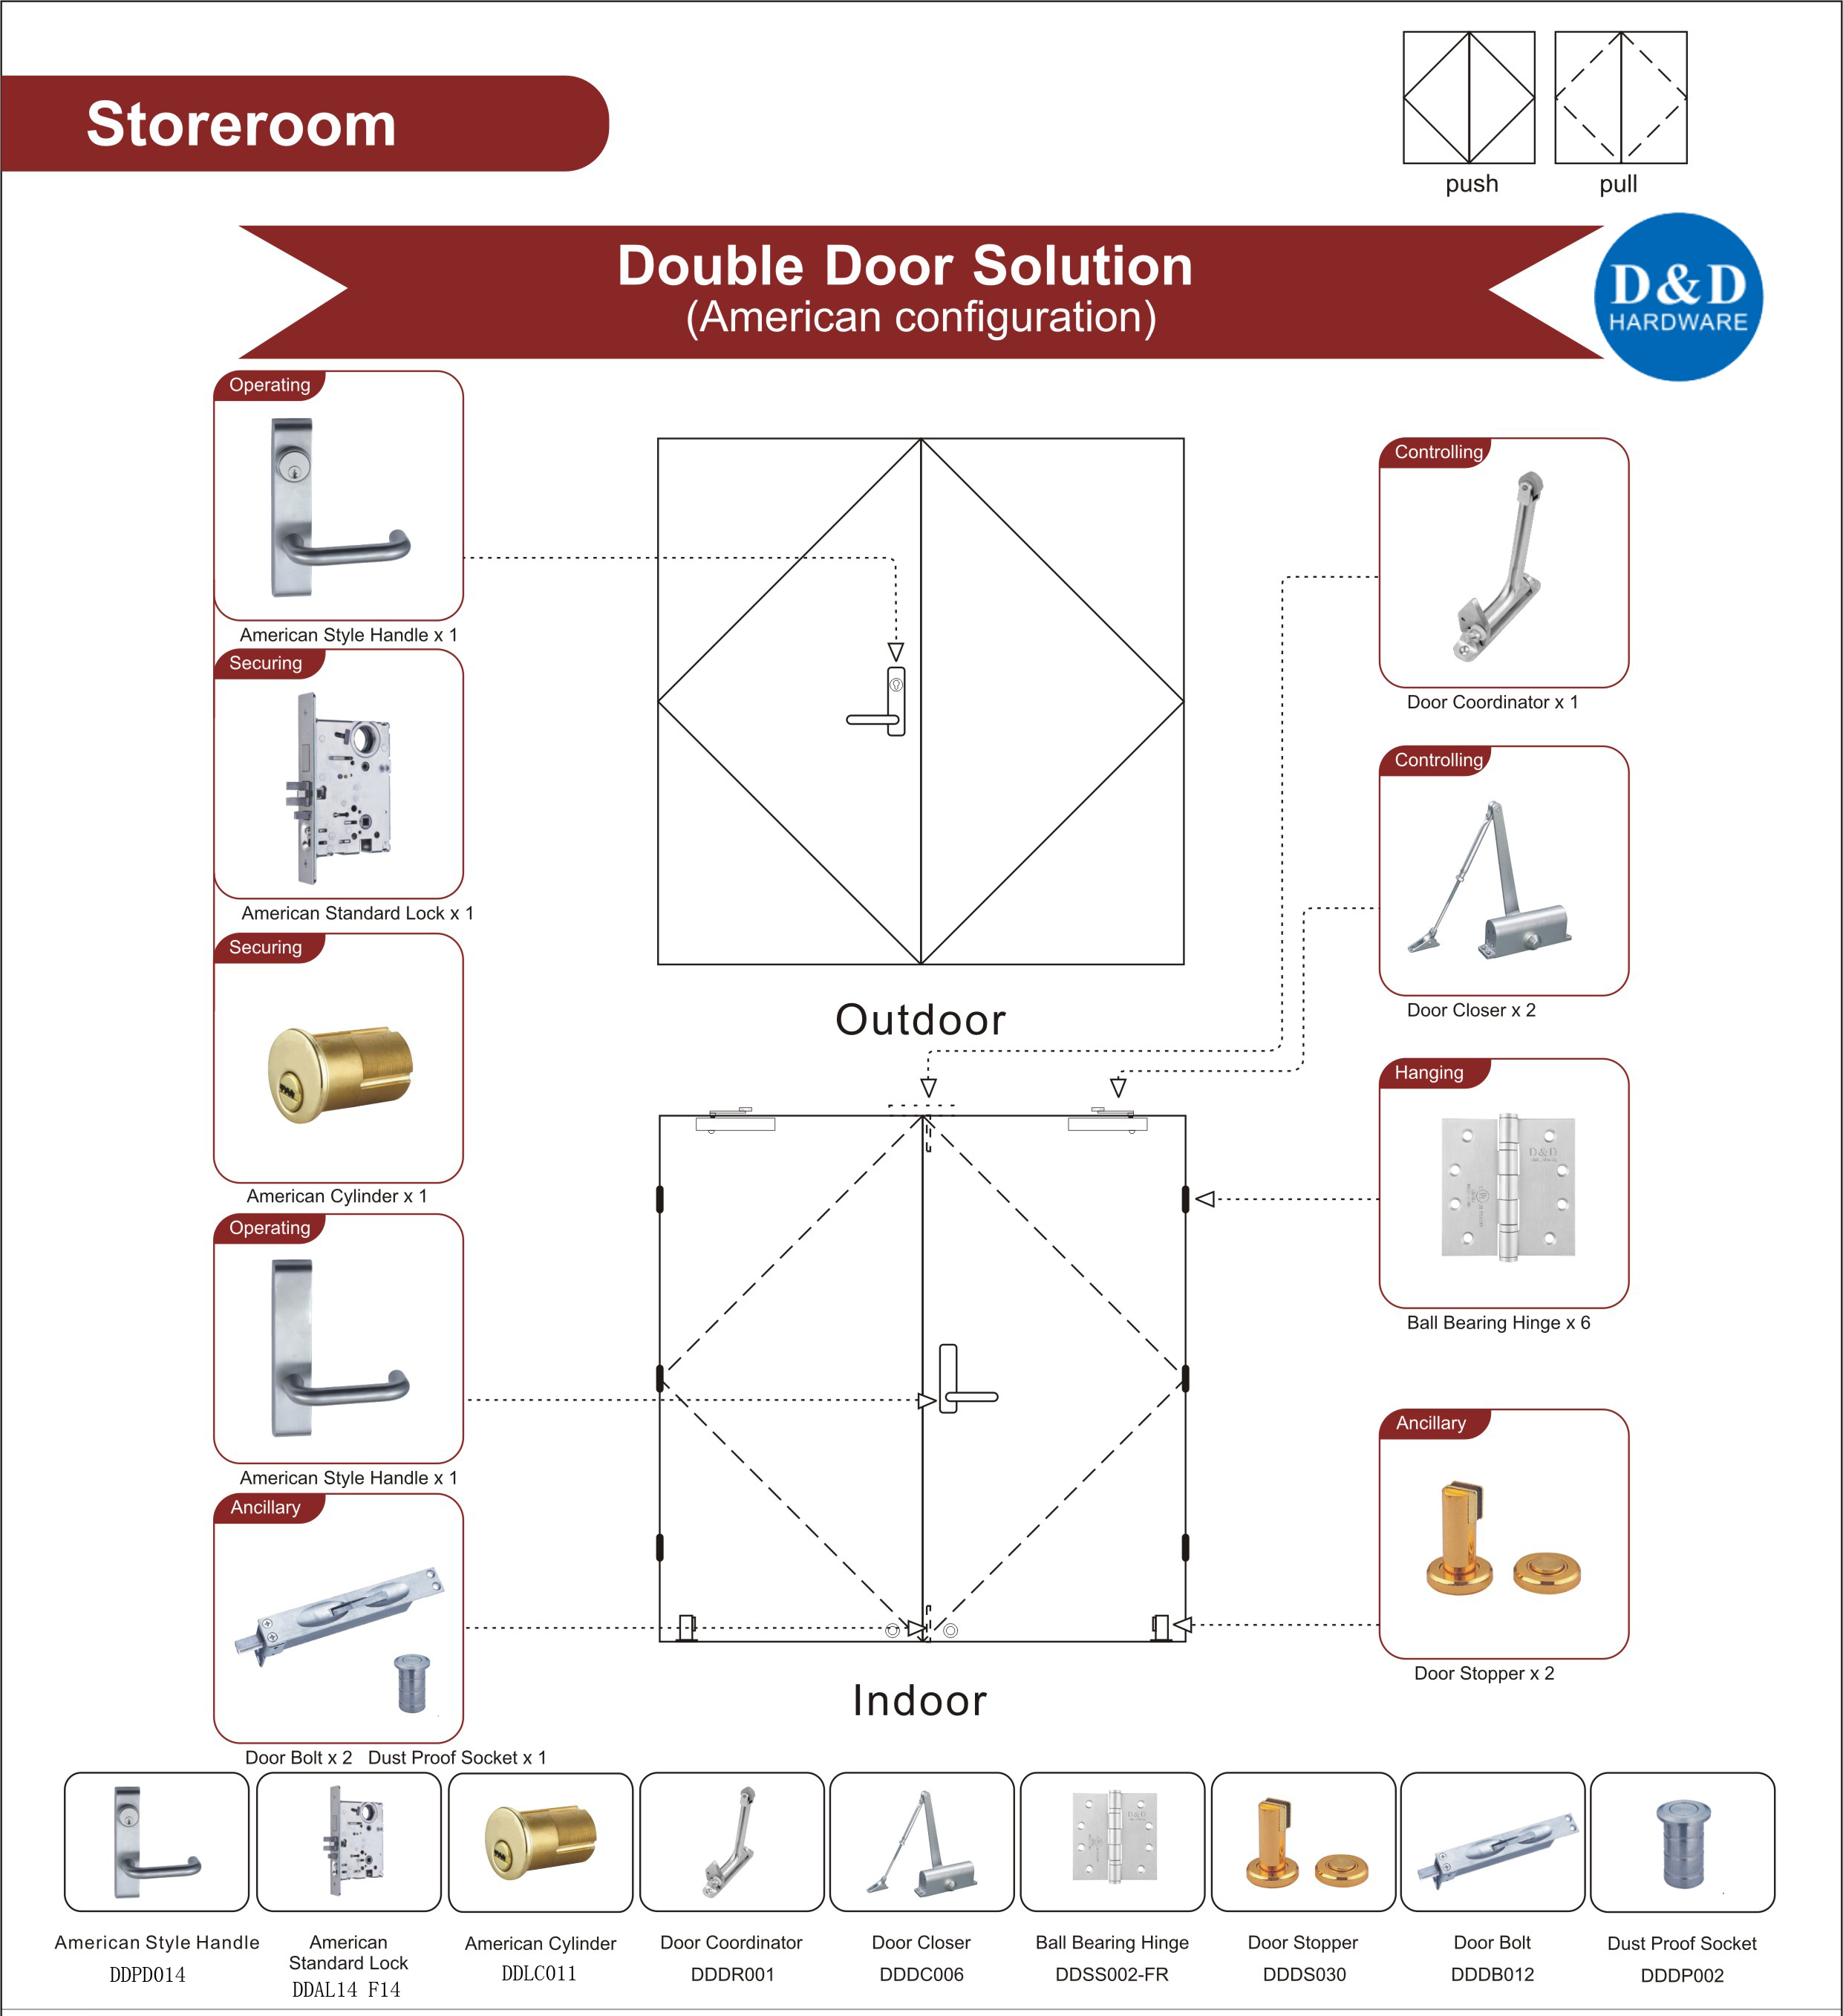 Fire Rated Wooden Door Ironmongery for Storeroom Double Door